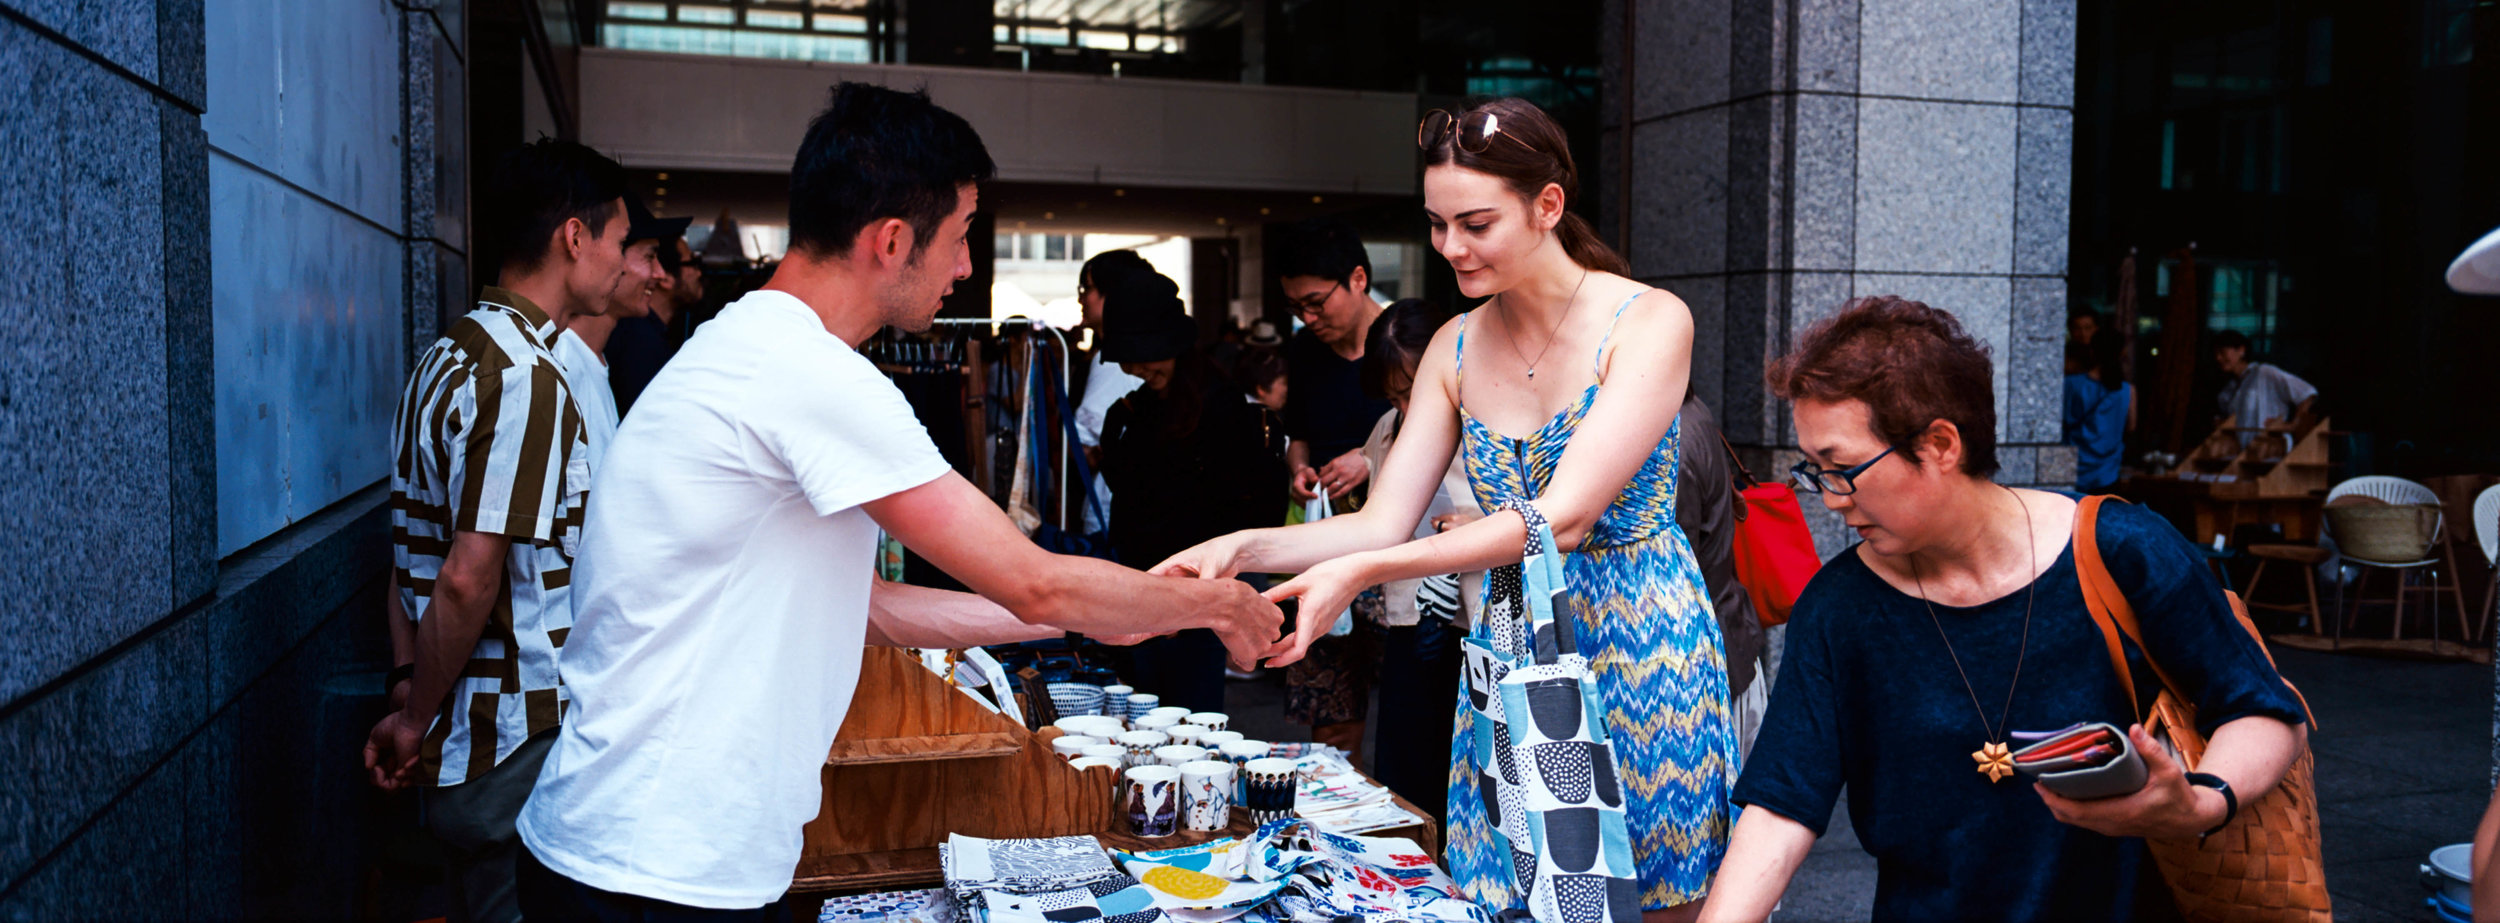 Buying her bag, at a UN School Flea Market - Kodak Ektar 100